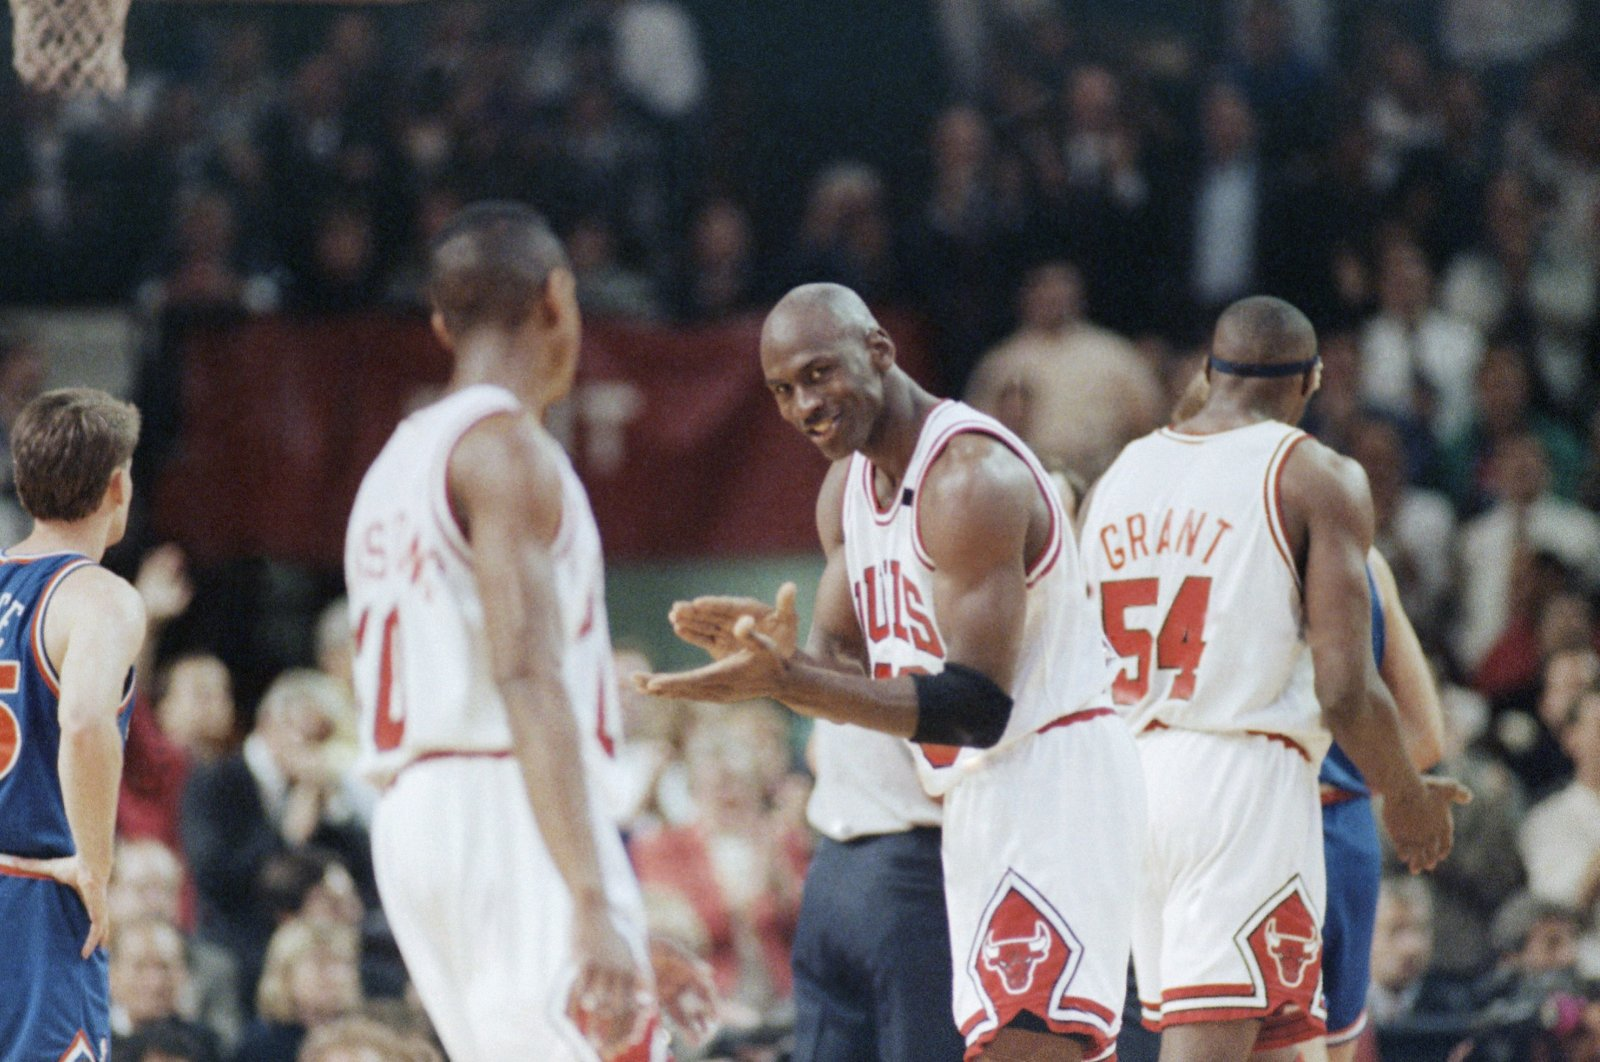 Michael Jordan (23) laughs, with teammate Horace Grant (54) in the background, during an NBA match in Chicago, Illinois, U.S., May 28, 1992. (AP Photo)